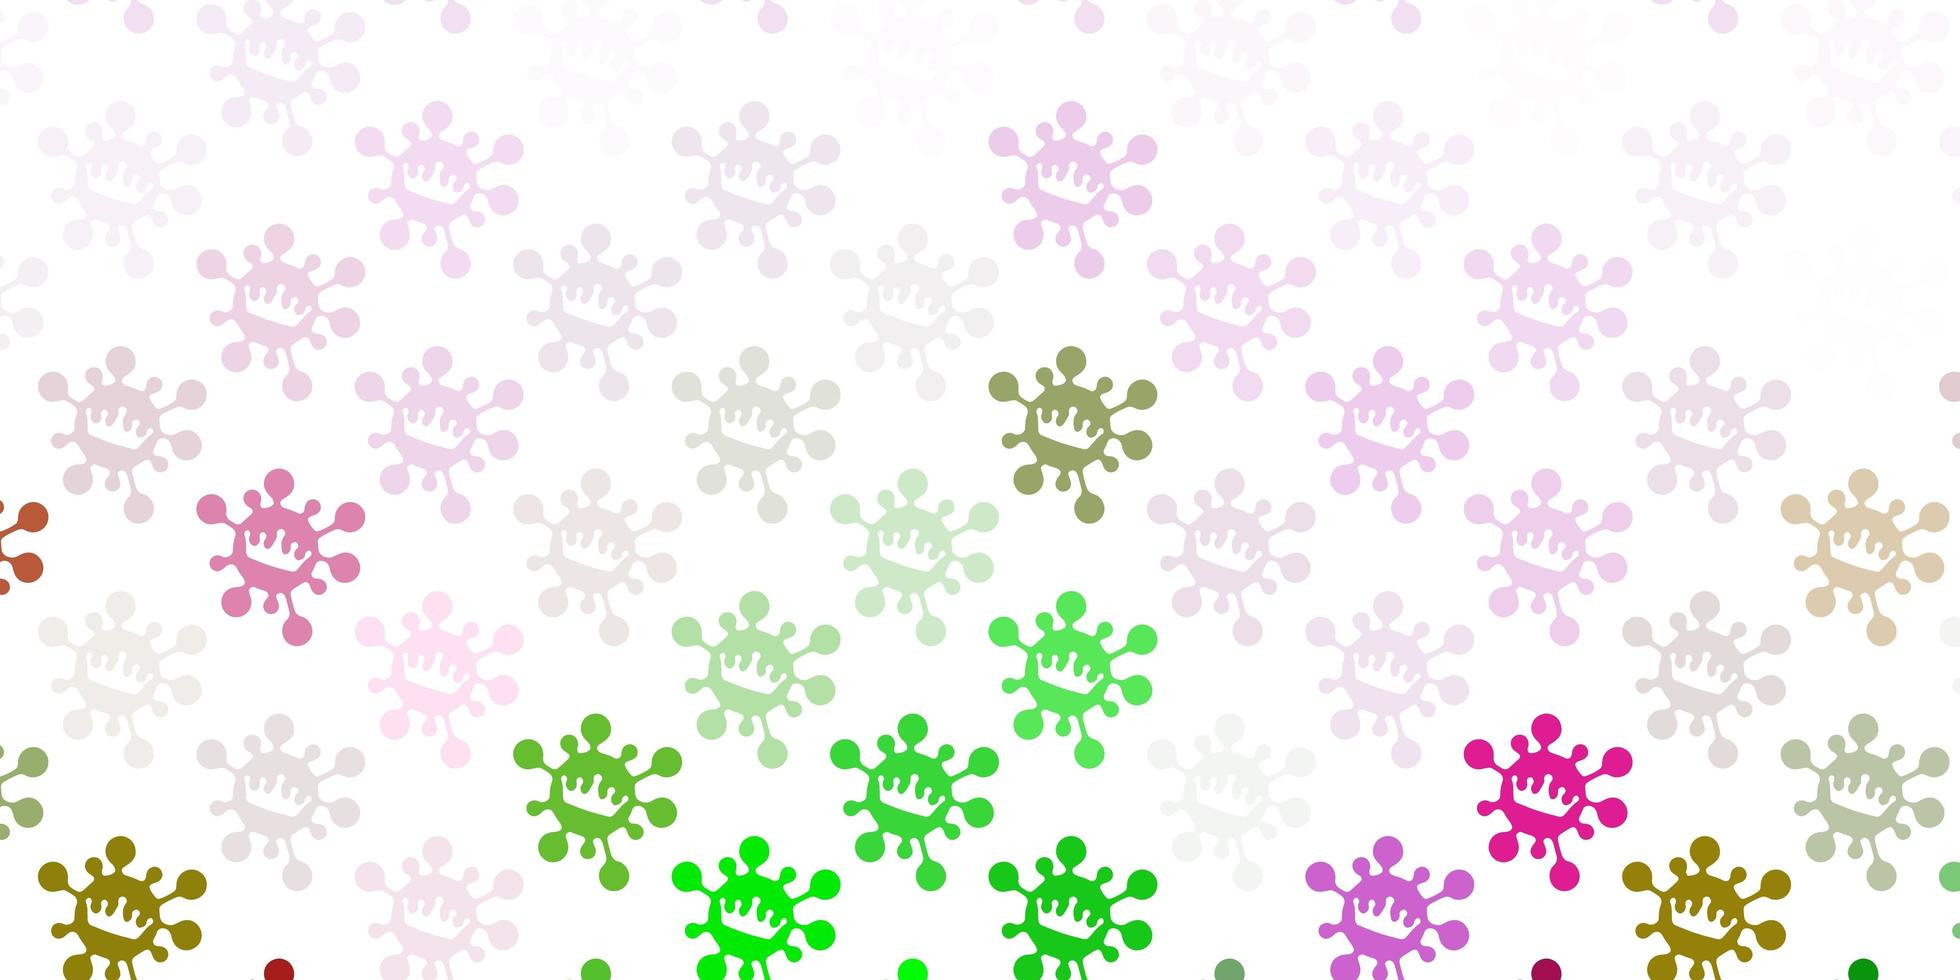 Light pink, green vector texture with disease symbols.